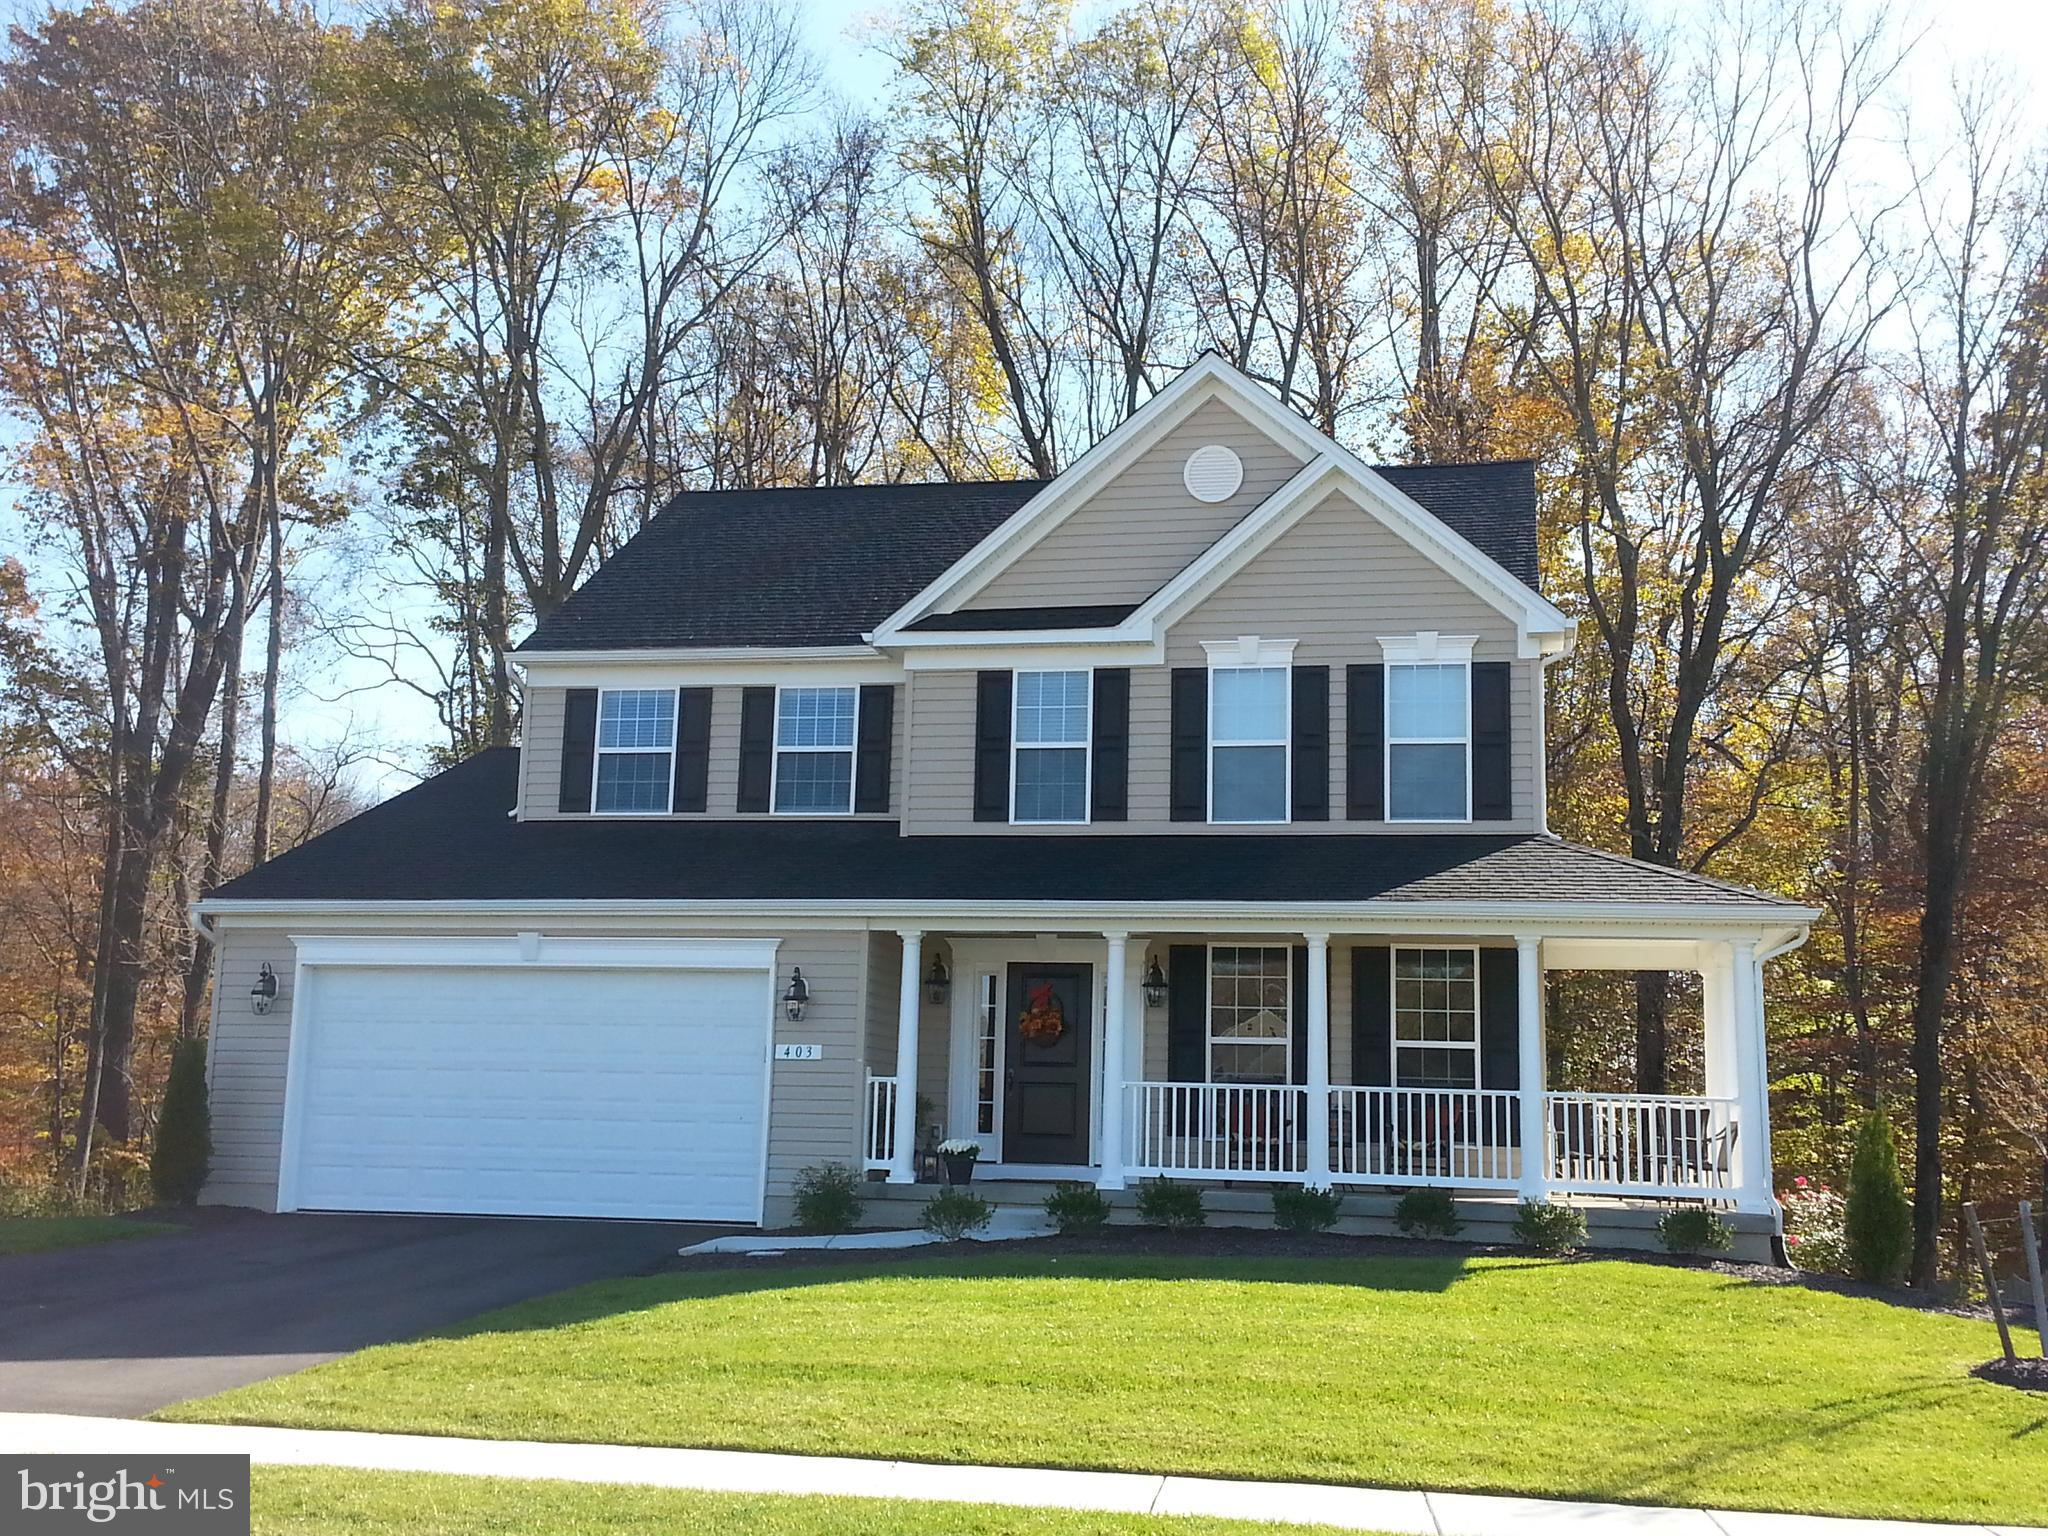 MAPLEWOOD DRIVE, RIDGELY, MD 21660